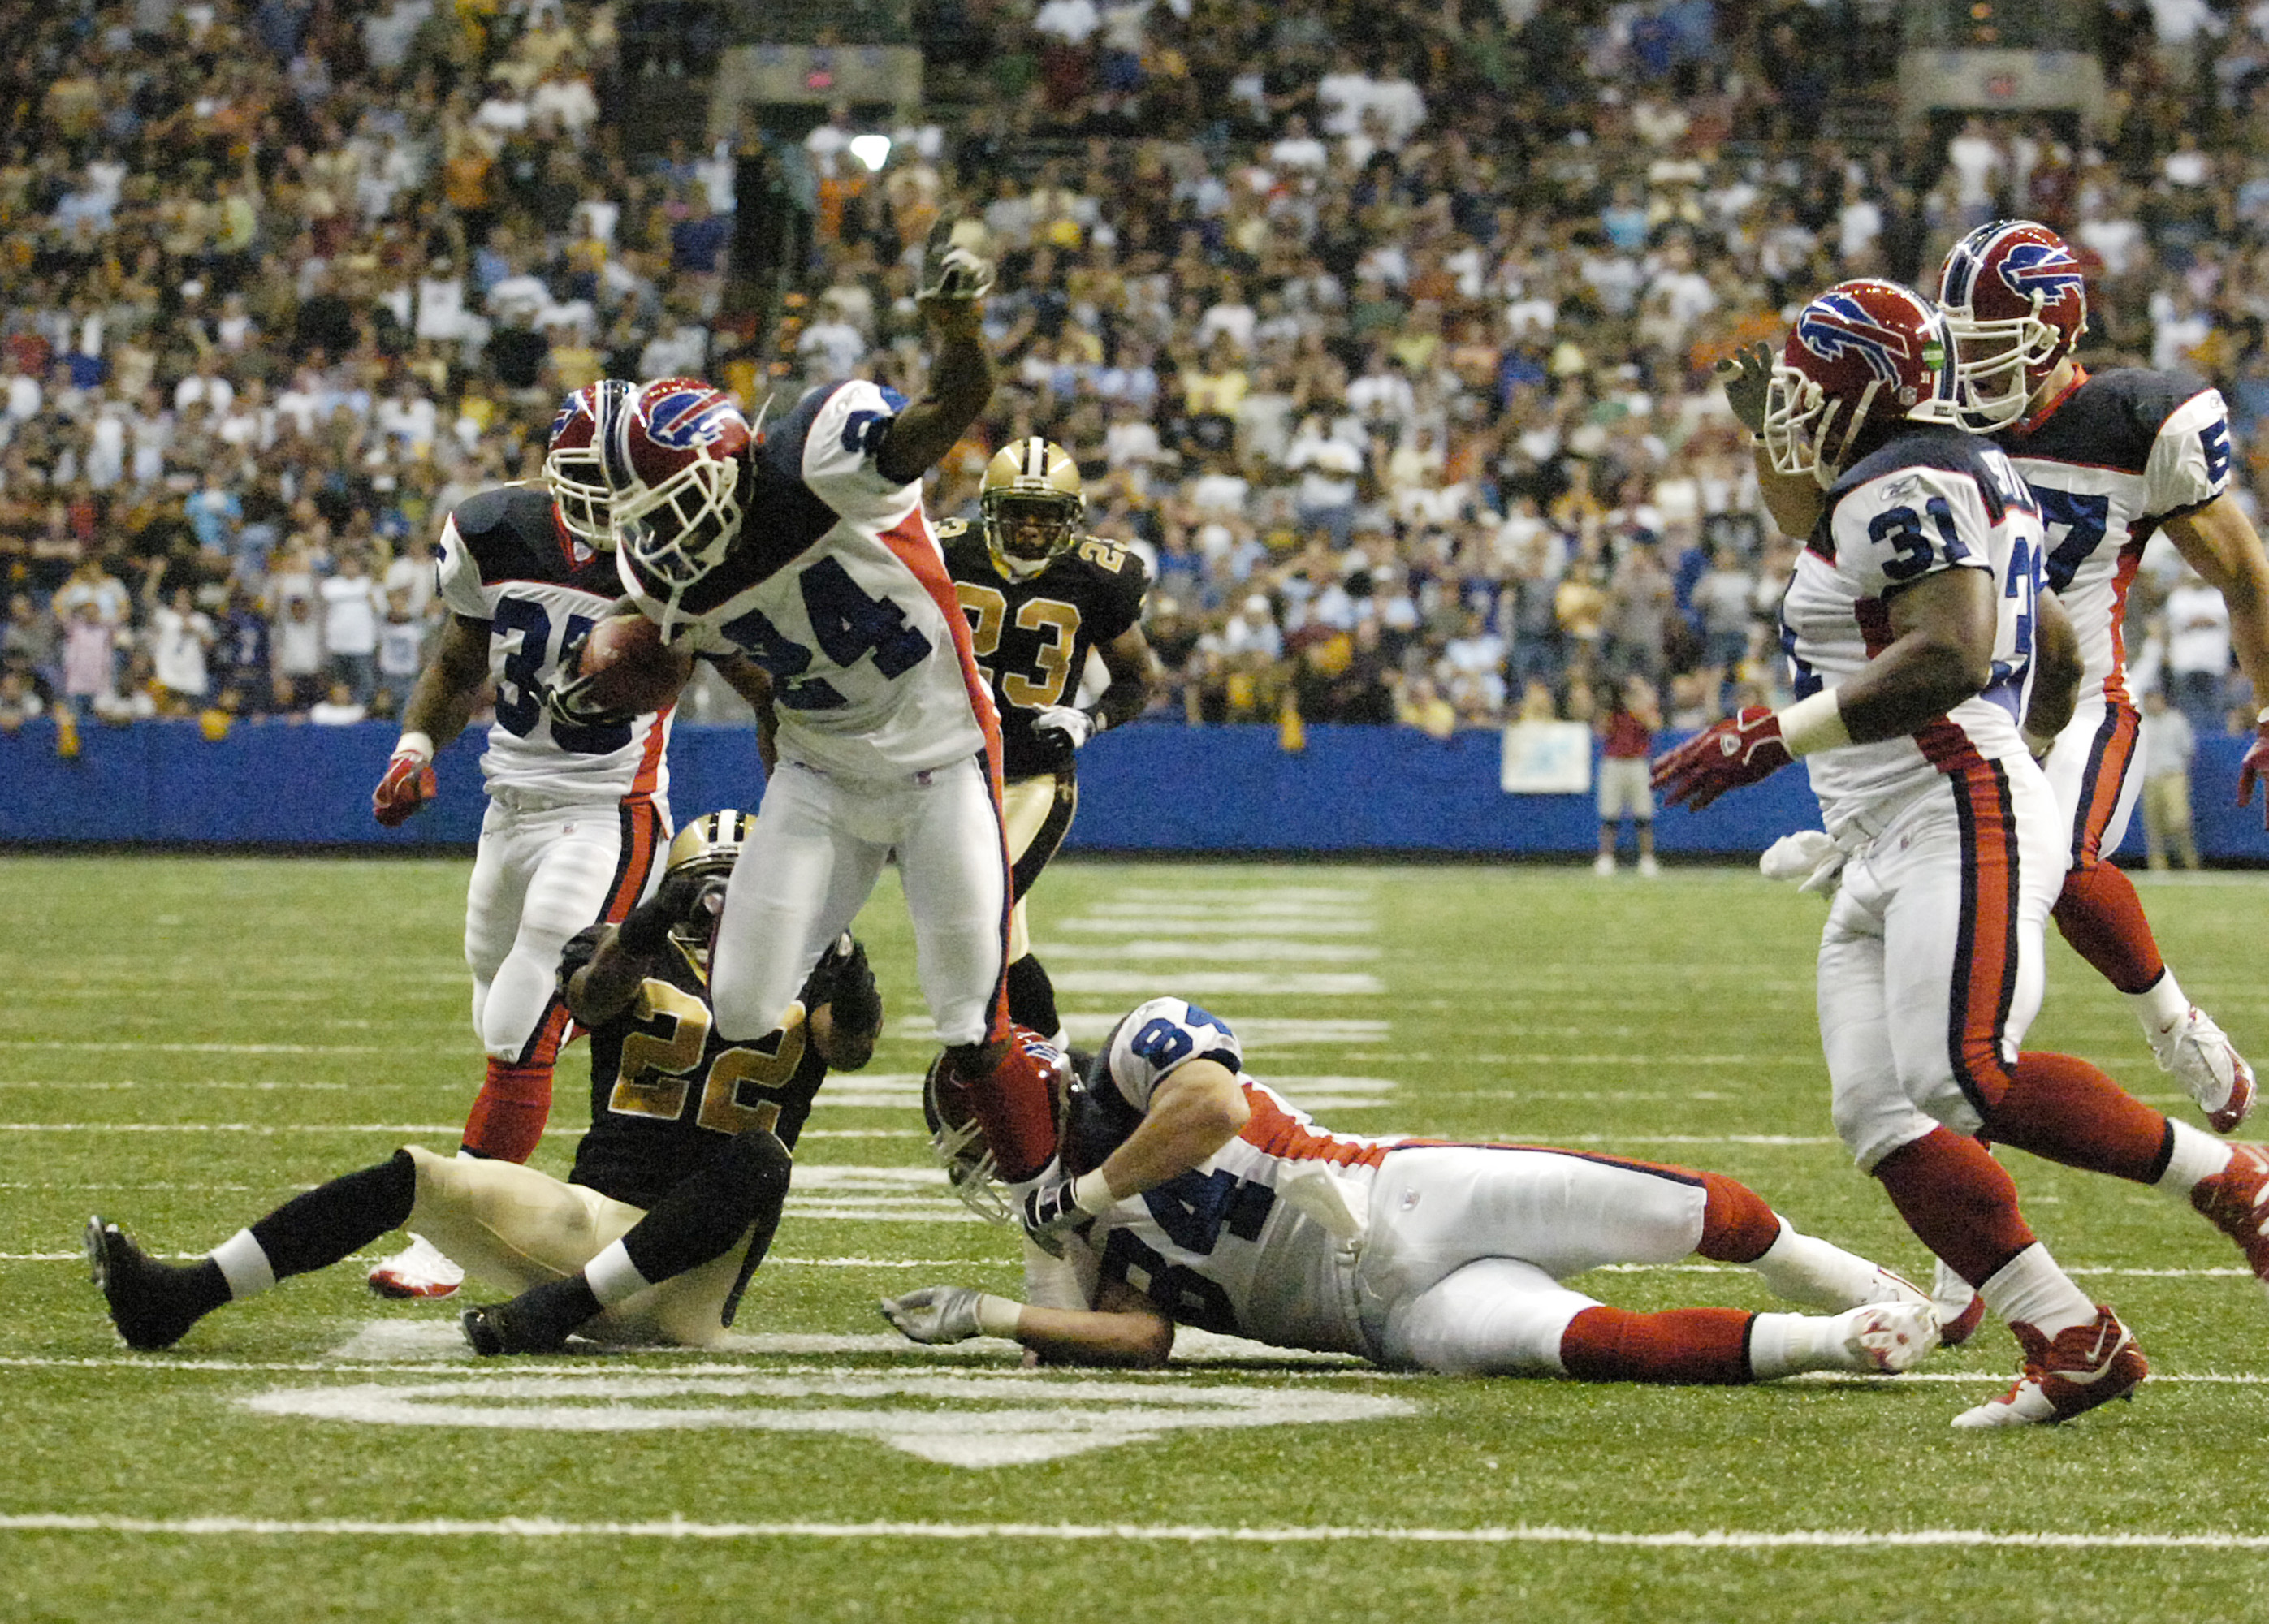 FOR SPORTS , Action of Buffalo Bills vs New Orleans Saints in the Alamodome in San Antonio, Texas on October 2,2005 Photo by James P. McCoy Buffalo News staff photographer Terrence Mcgee gets tripped up on the 15 yard line almost making a td on the kick off